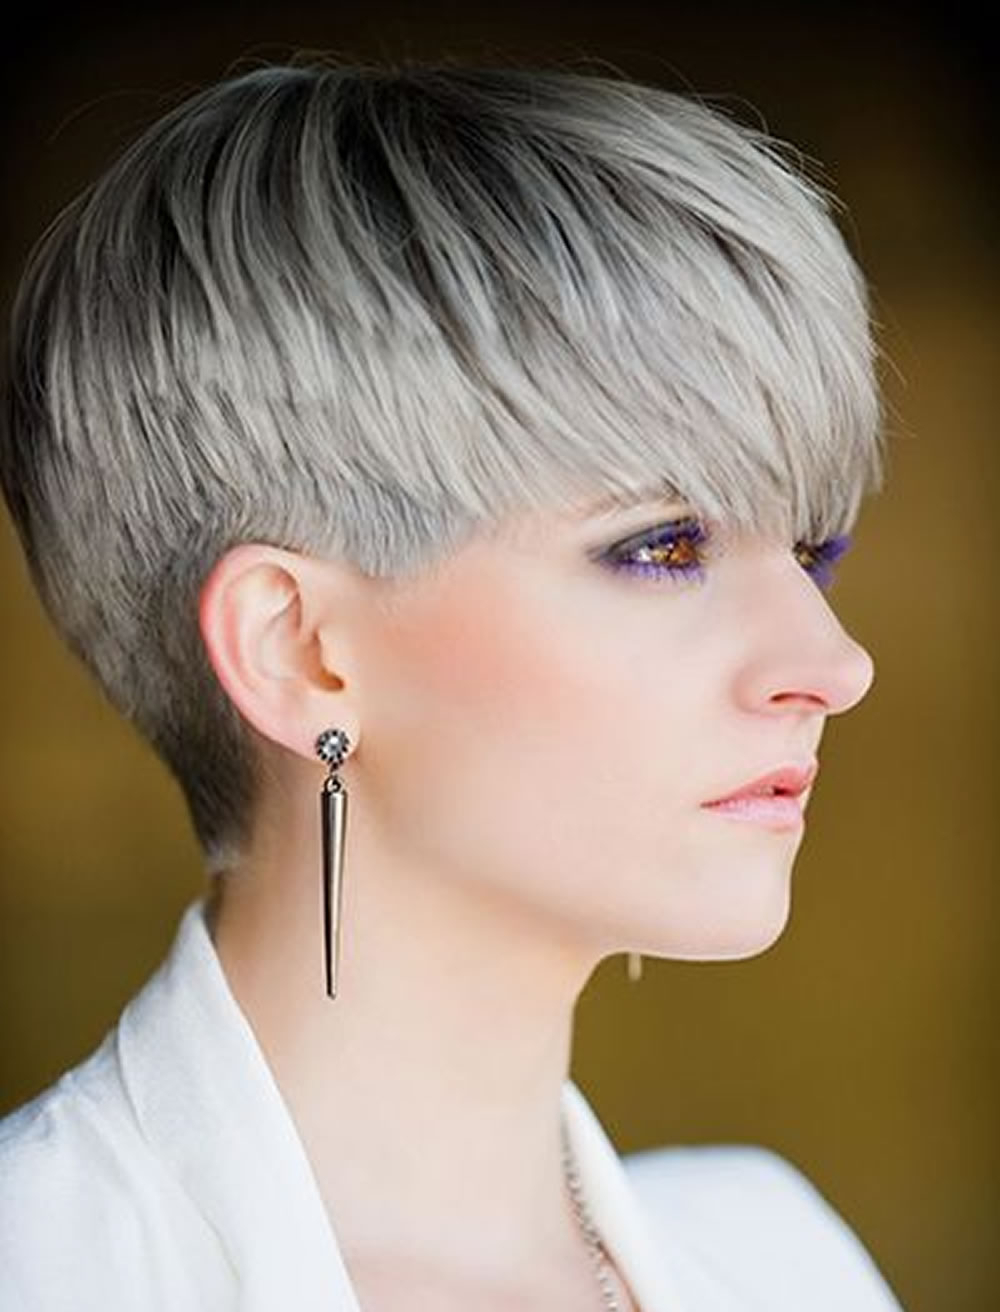 Trend Short Haircuts For 2018 2019 Best Pixie Hair Ideas & Video With Gray Pixie Hairstyles For Thick Hair (View 20 of 20)